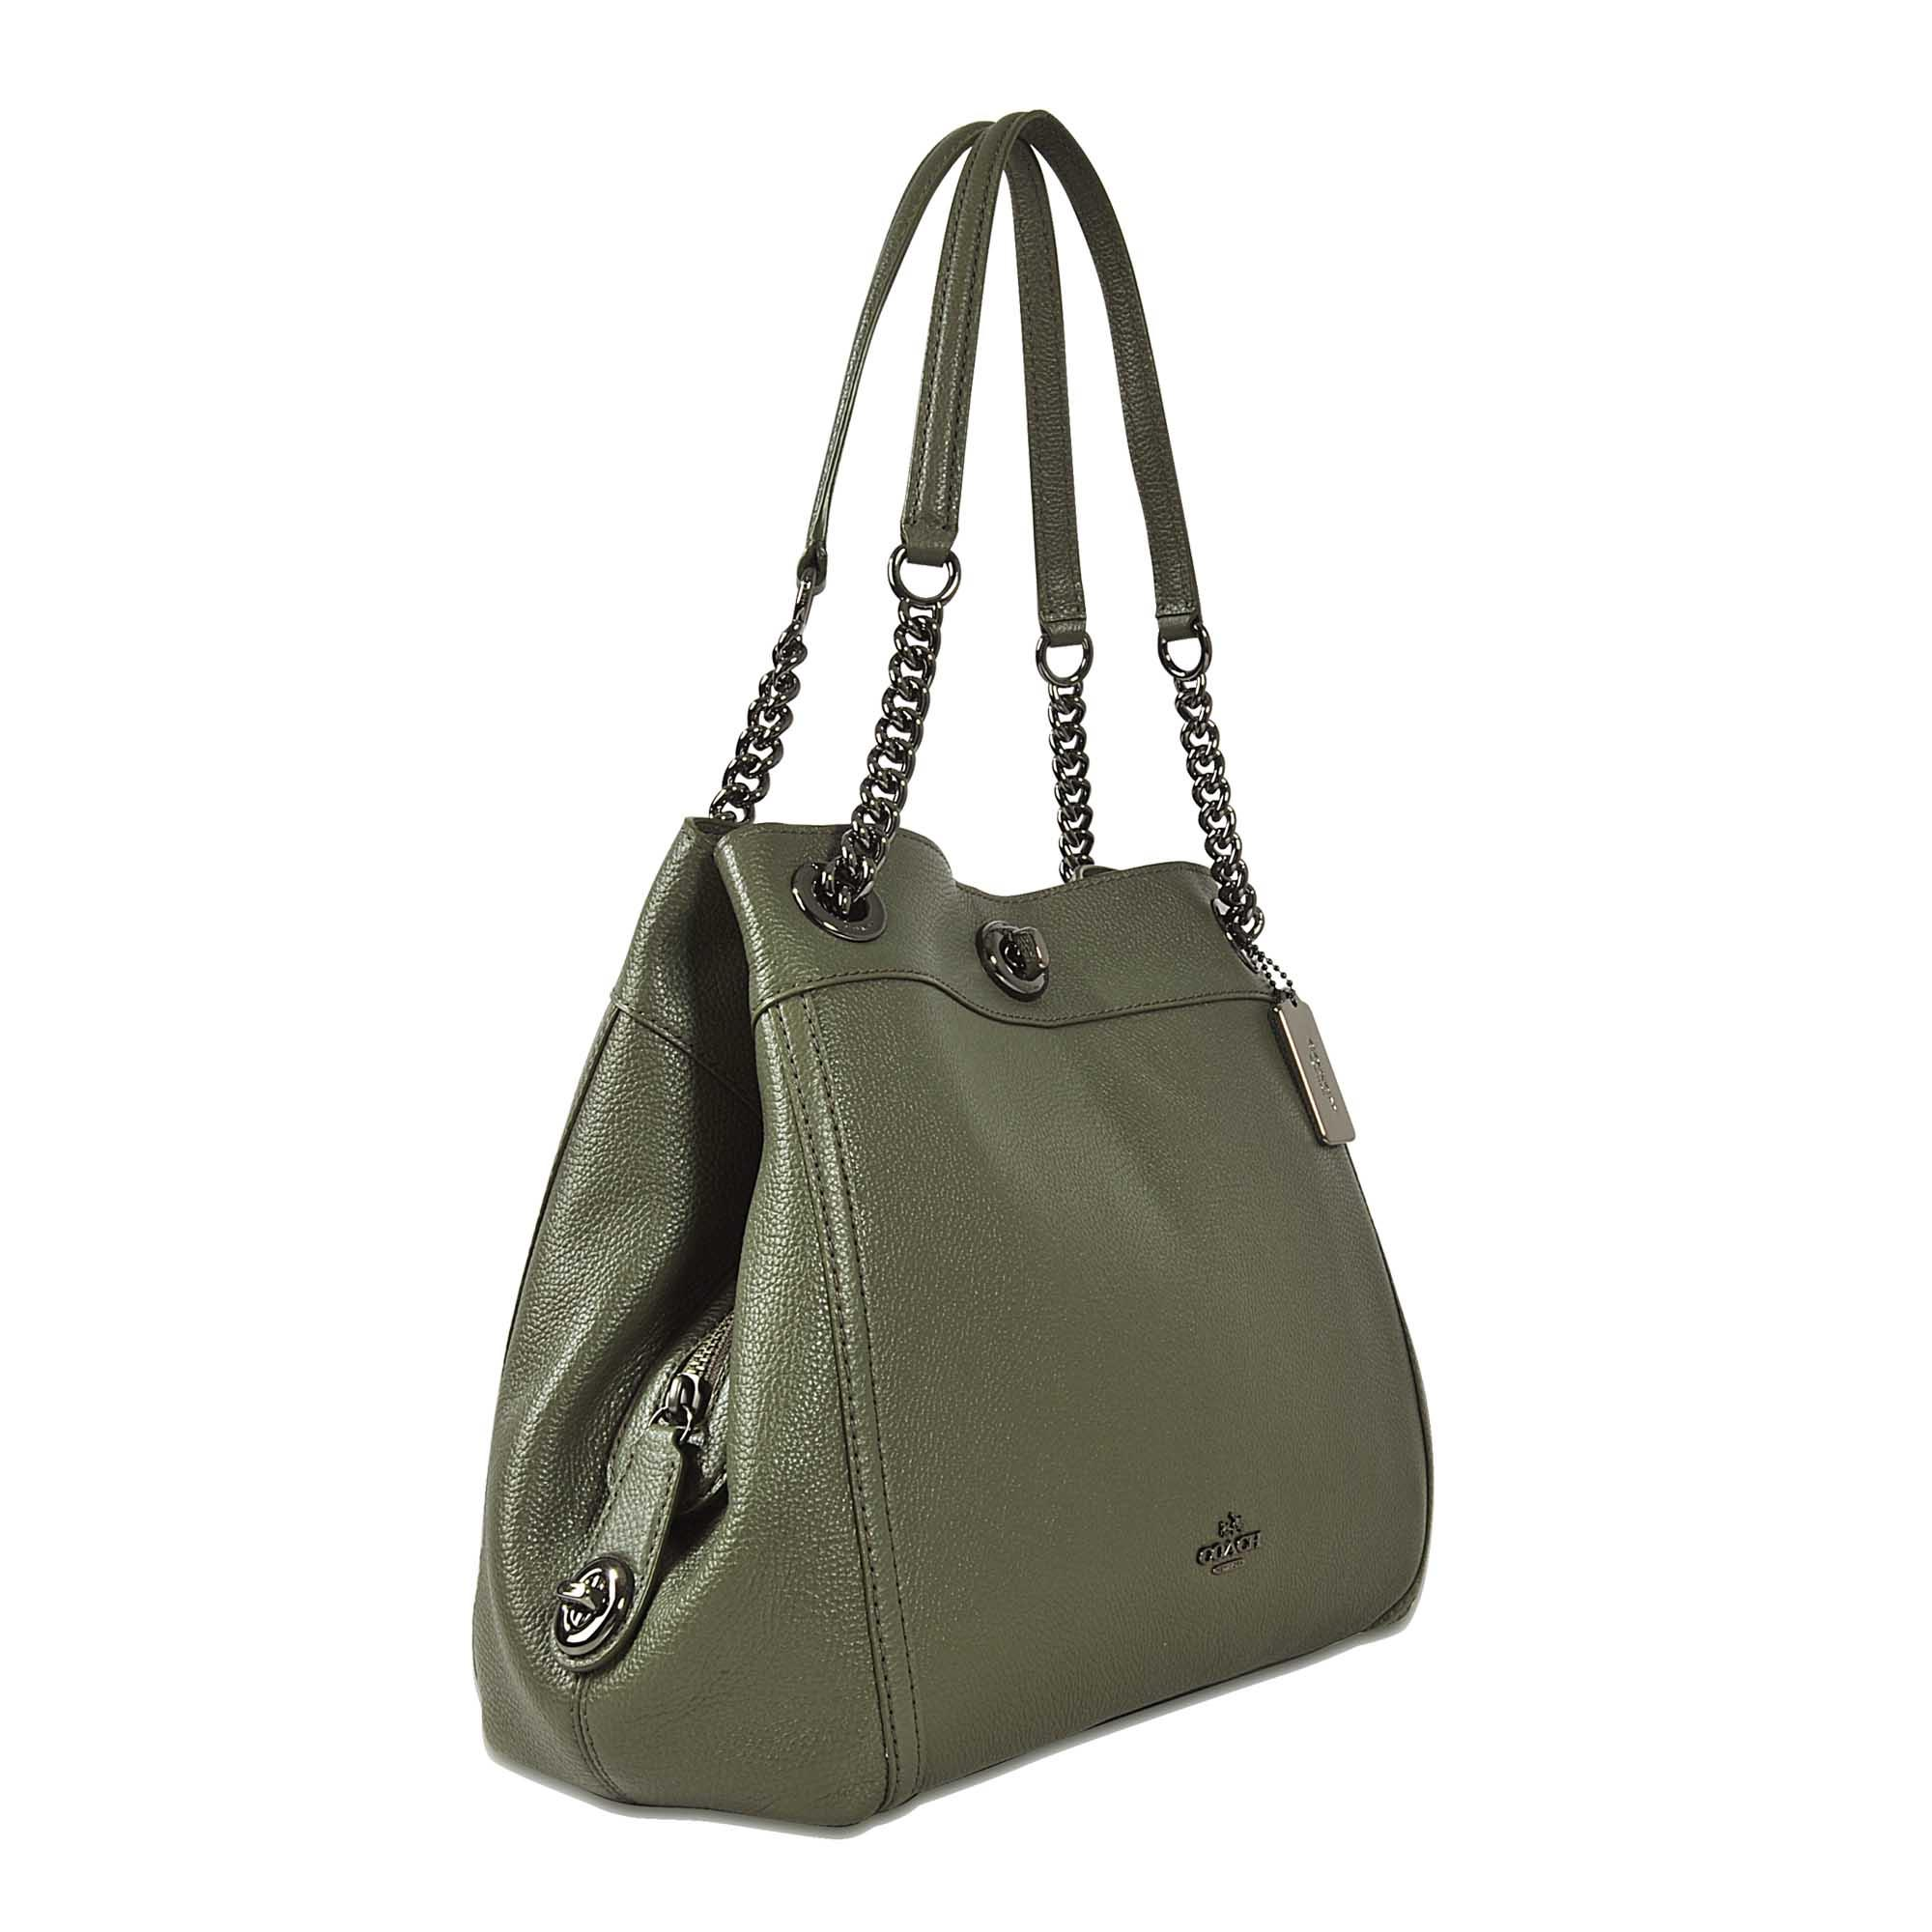 Lyst - Coach Turnlock Edie Shoulder Bag in Green 96d35e783f955